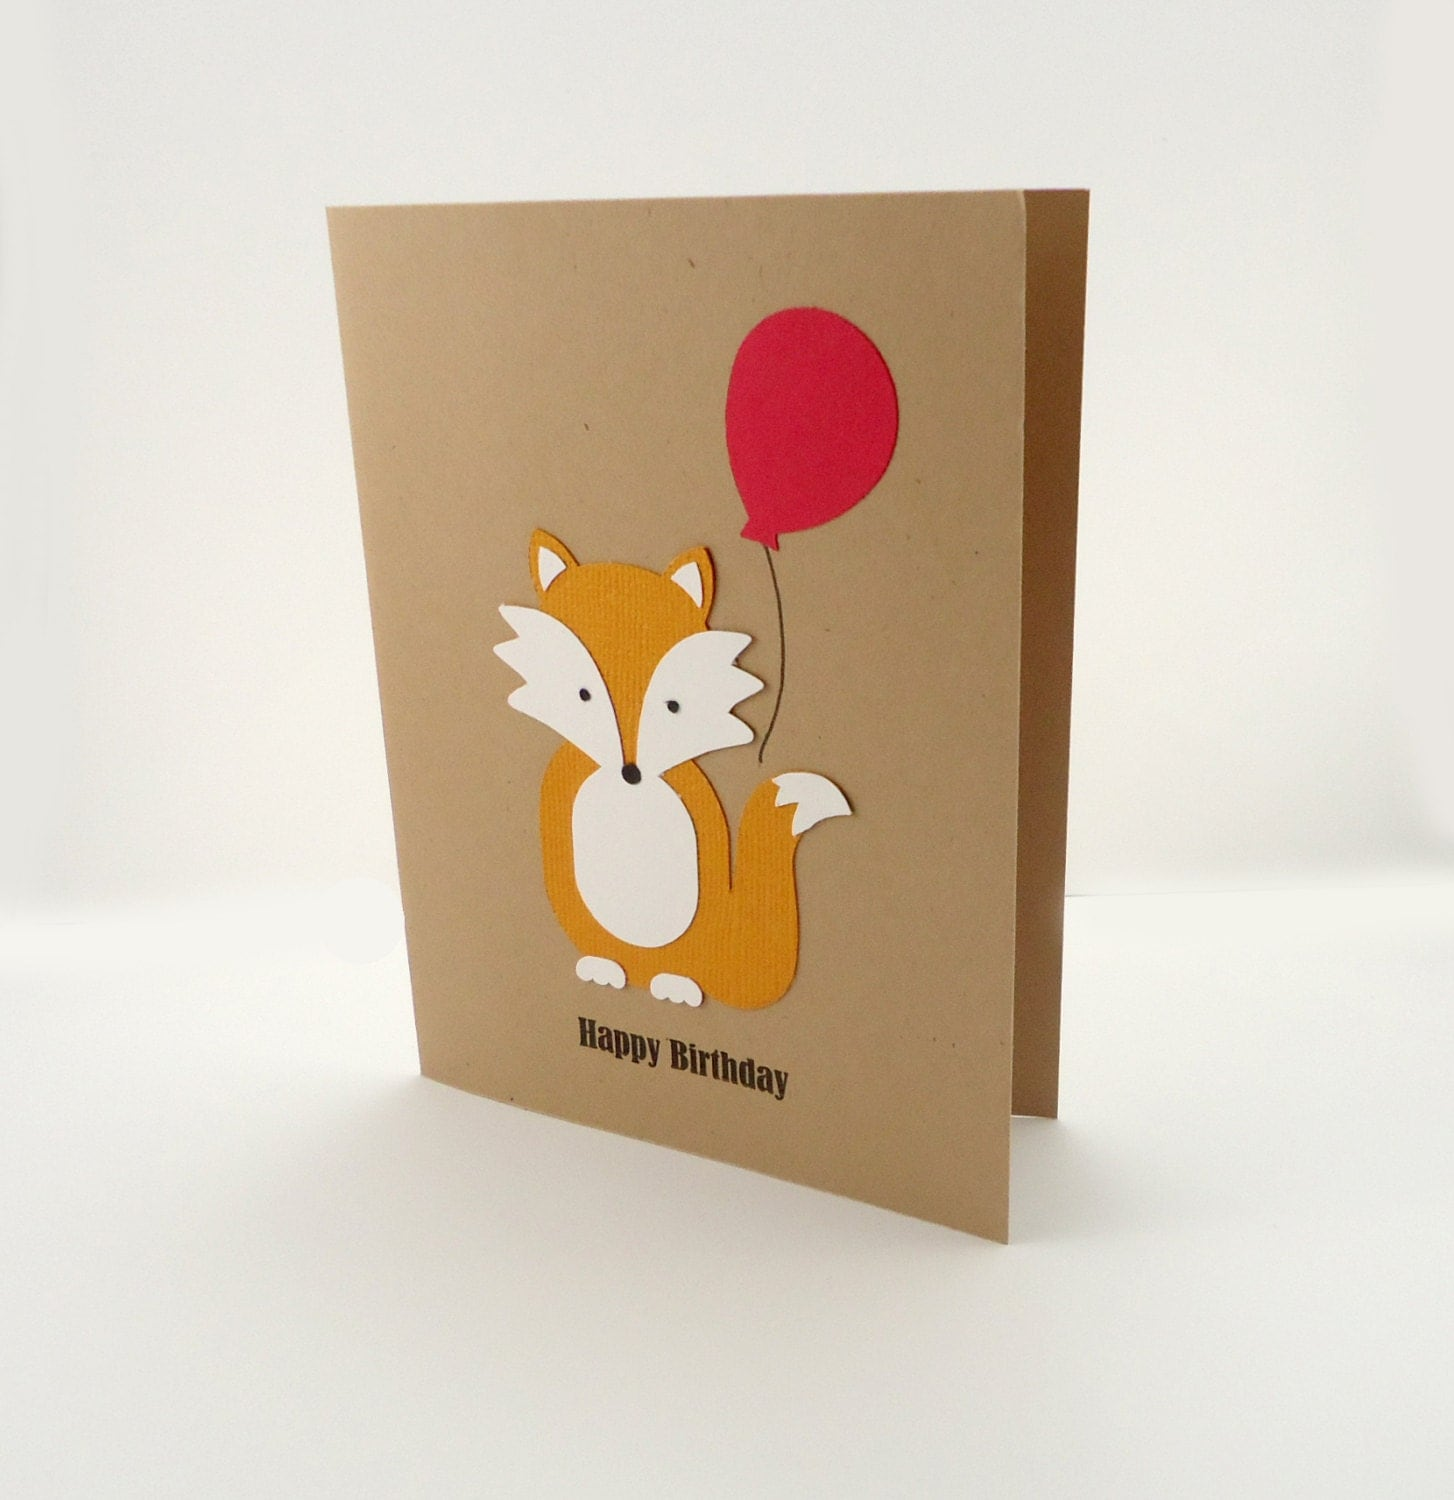 fox party animal card, fox holding balloon card